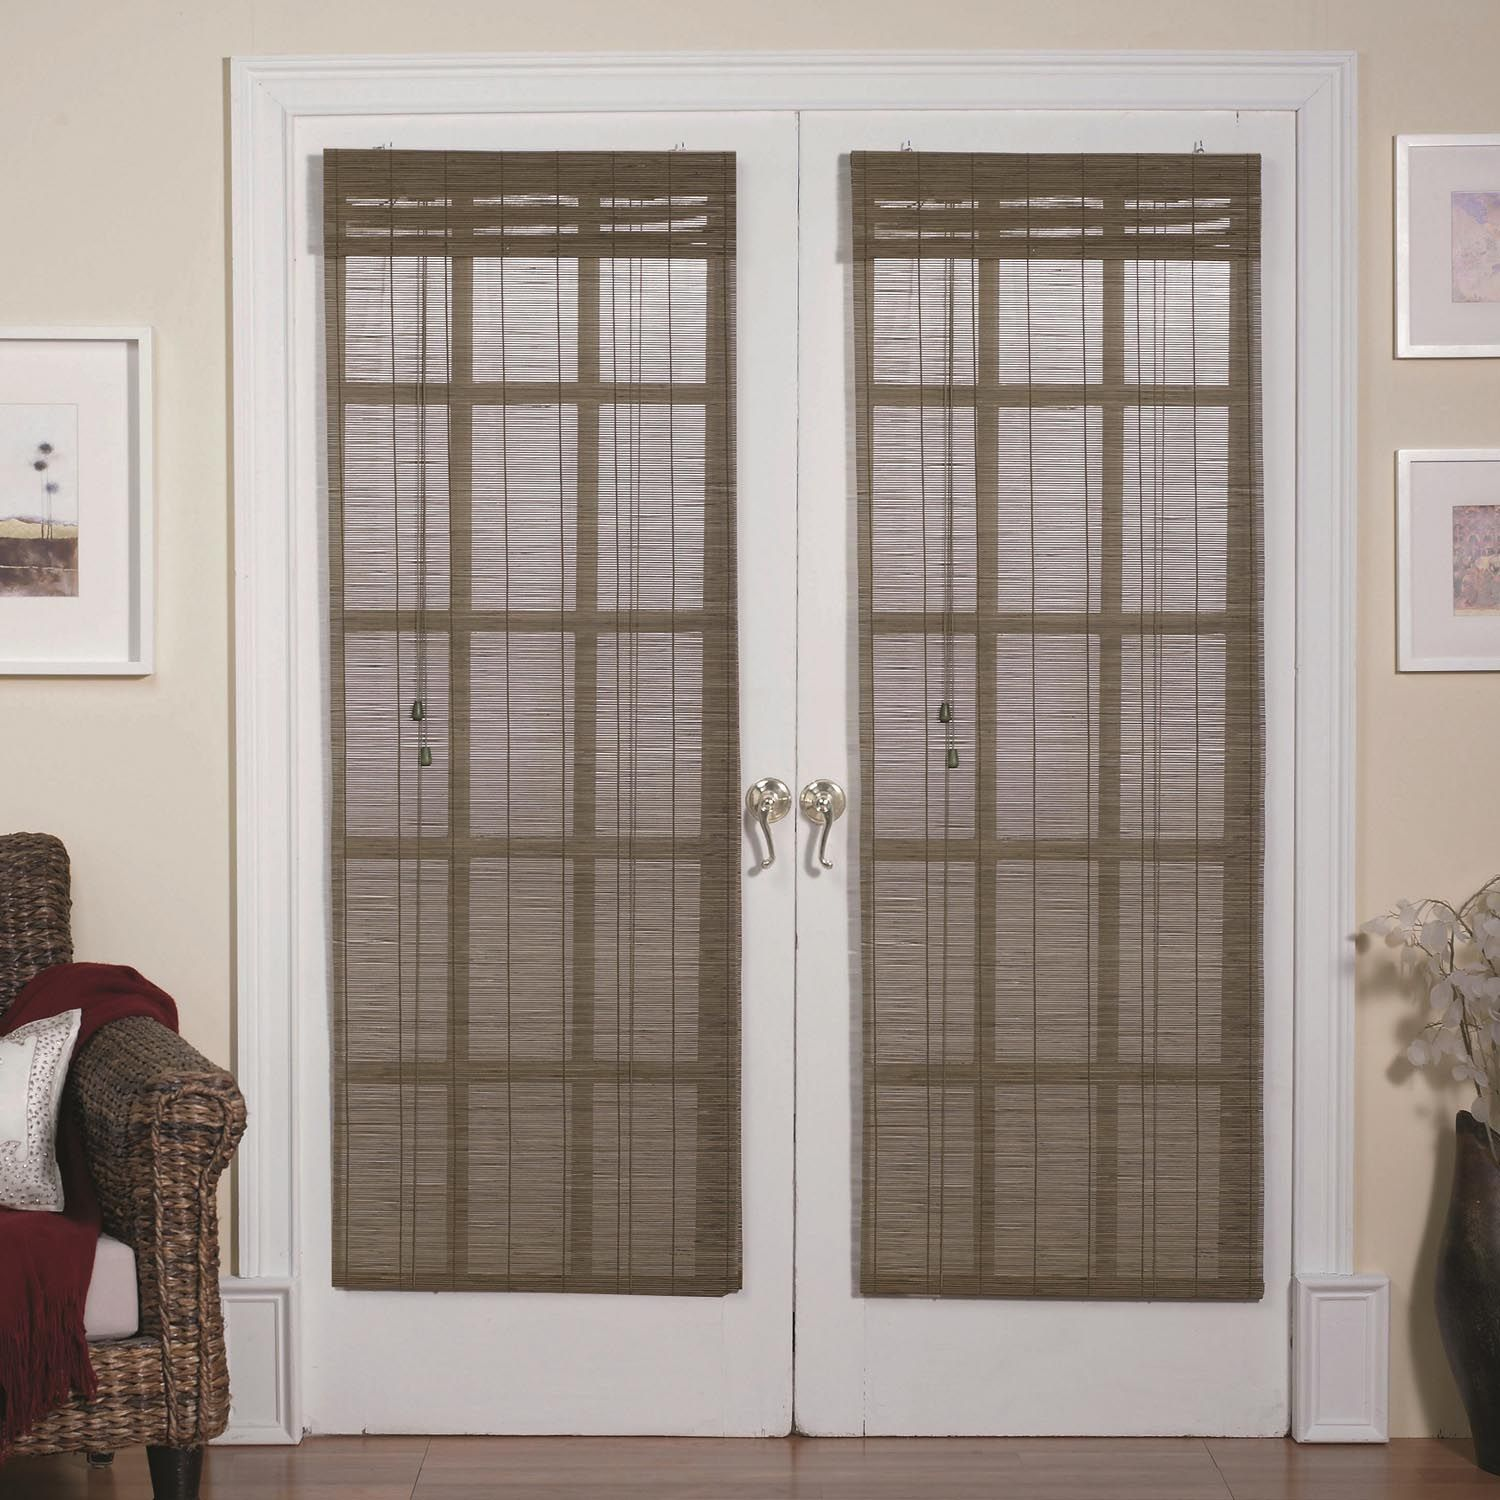 Magnetic Roman Shades For French Doors Window Shades Pinterest